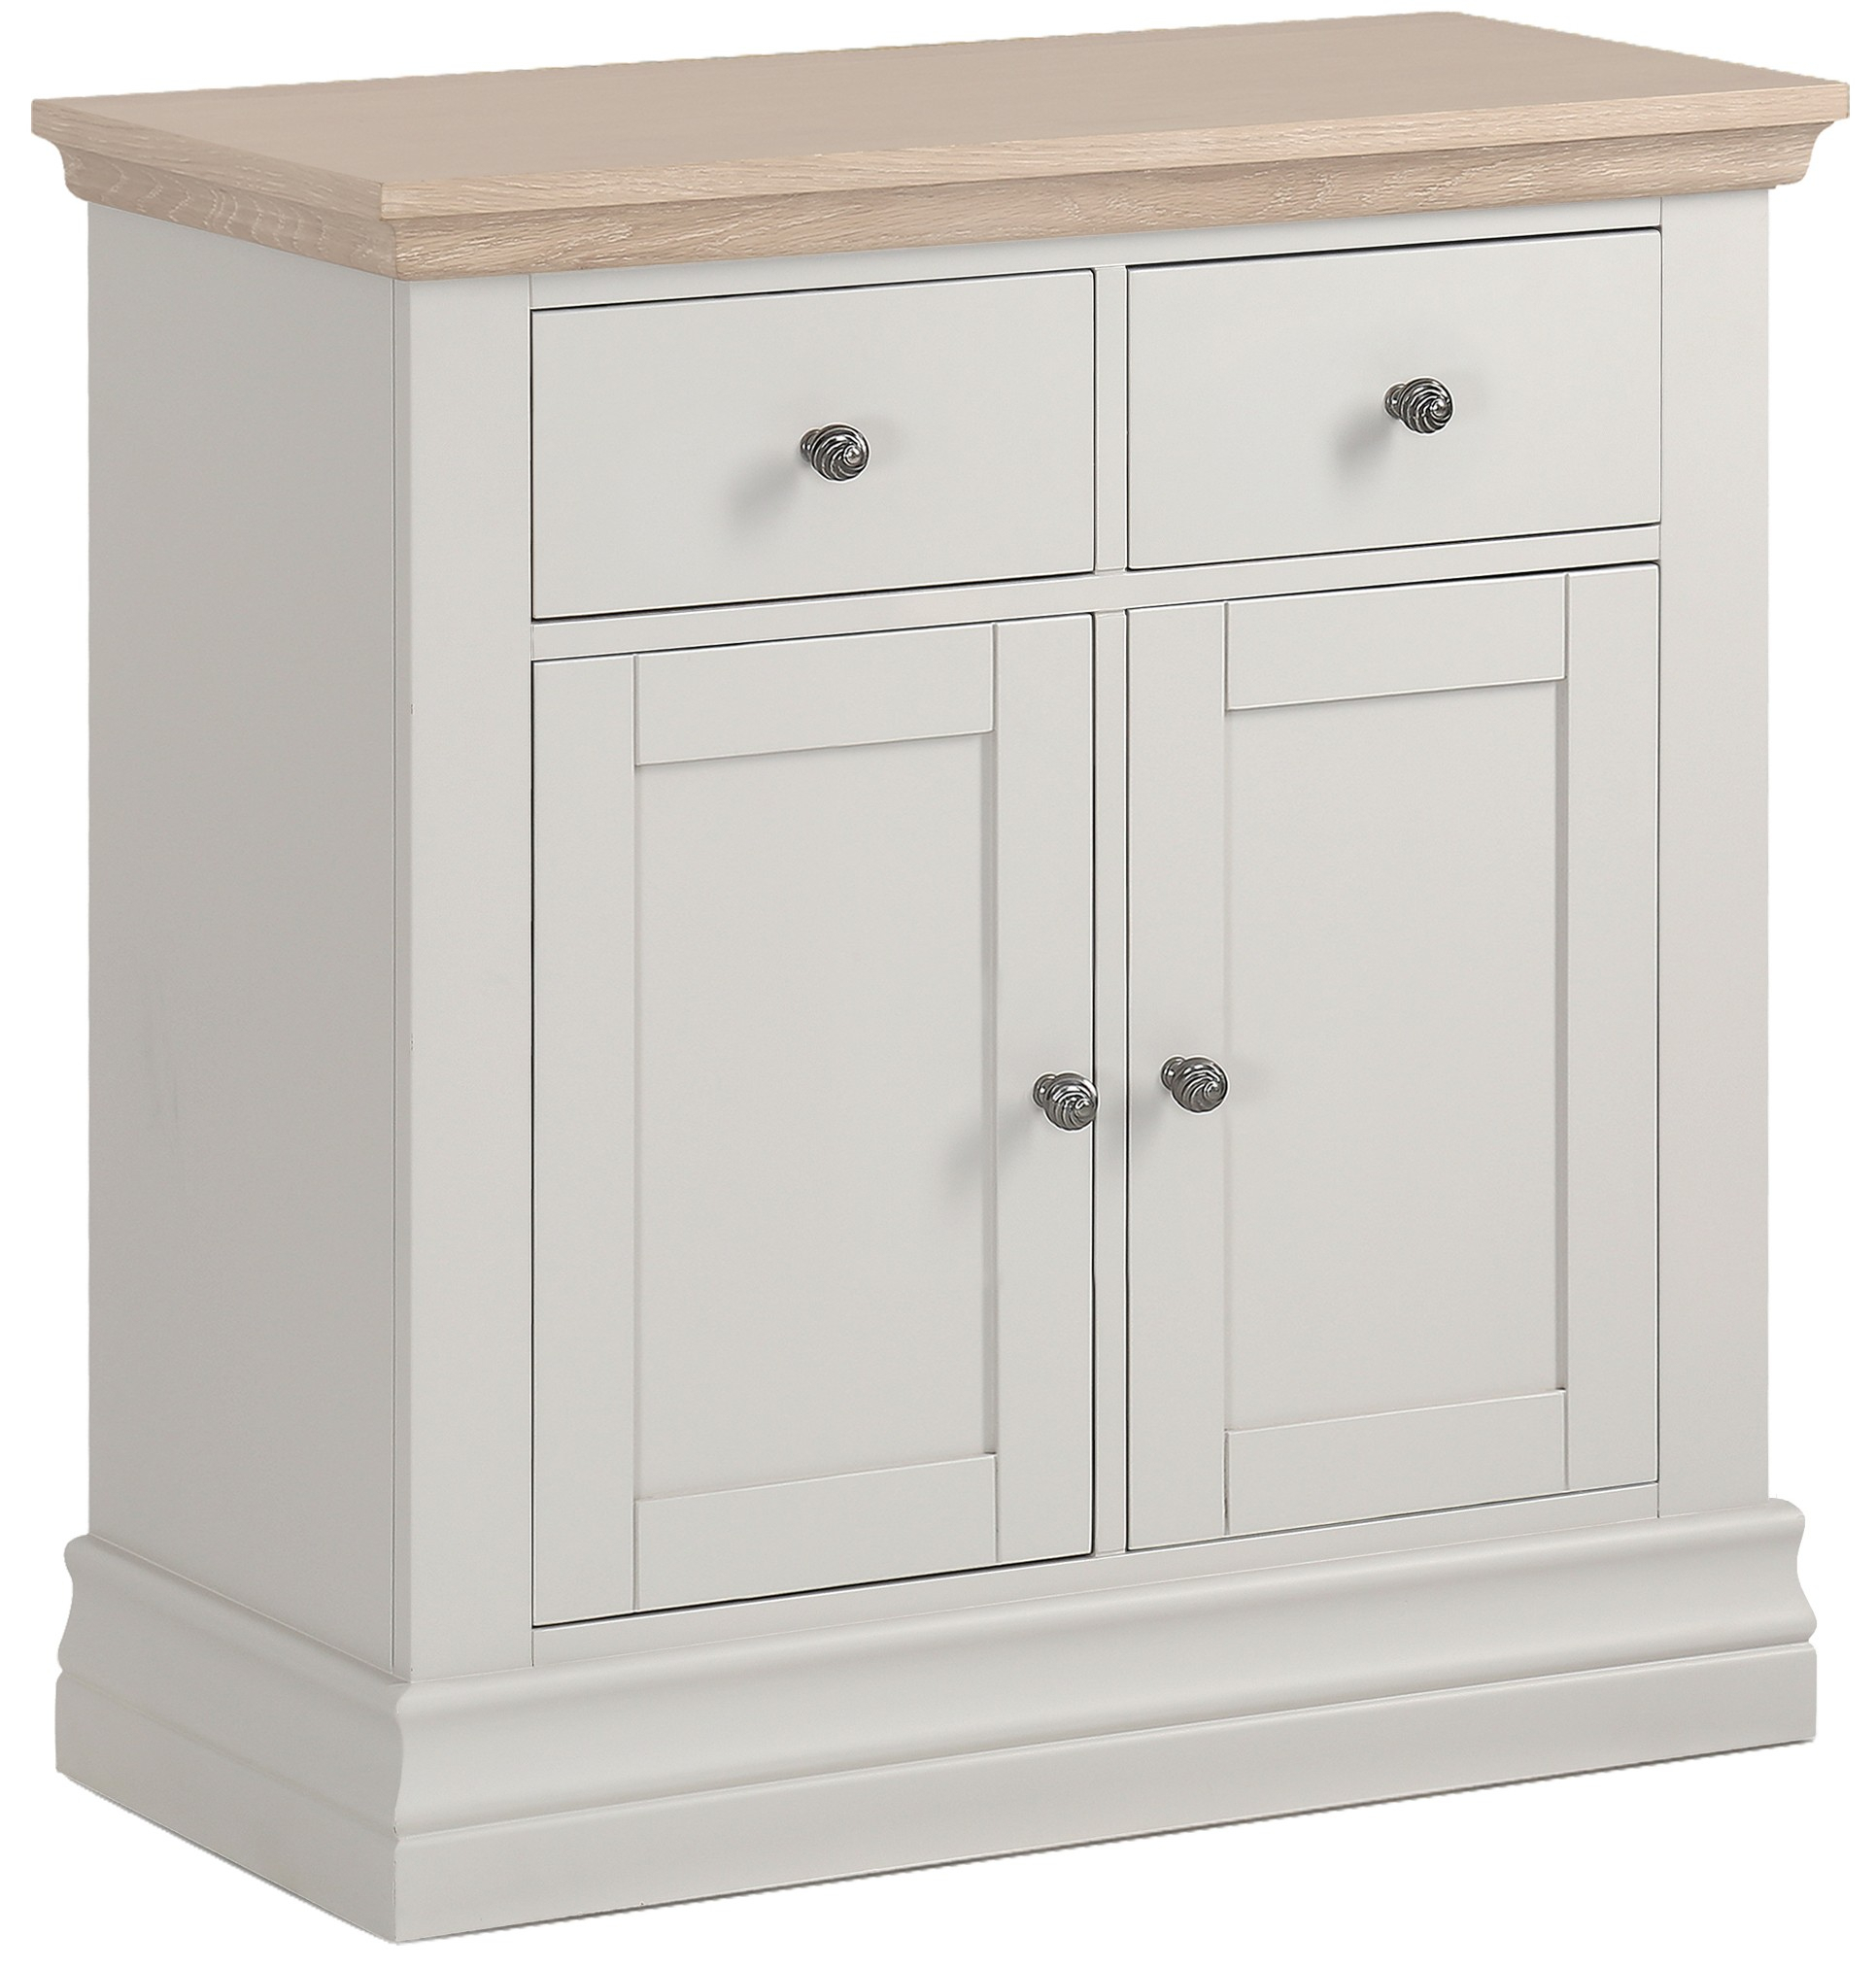 Annecy Mini Sideboard – More Options With Newest Annecy Sideboards (View 3 of 20)